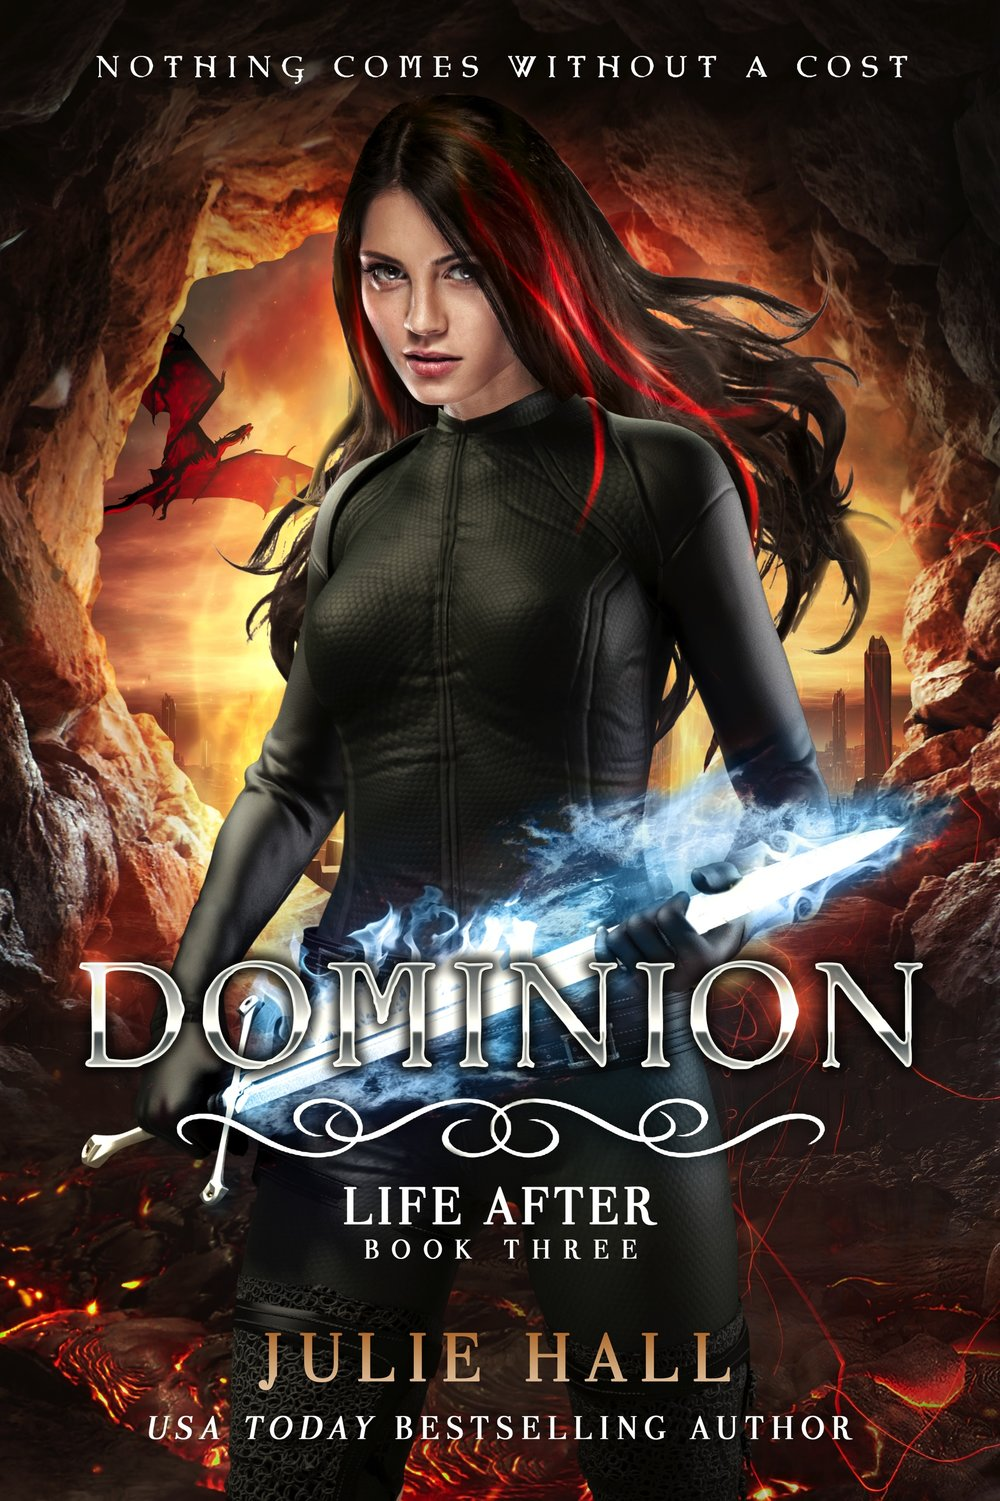 Dominion-Kindle.jpg